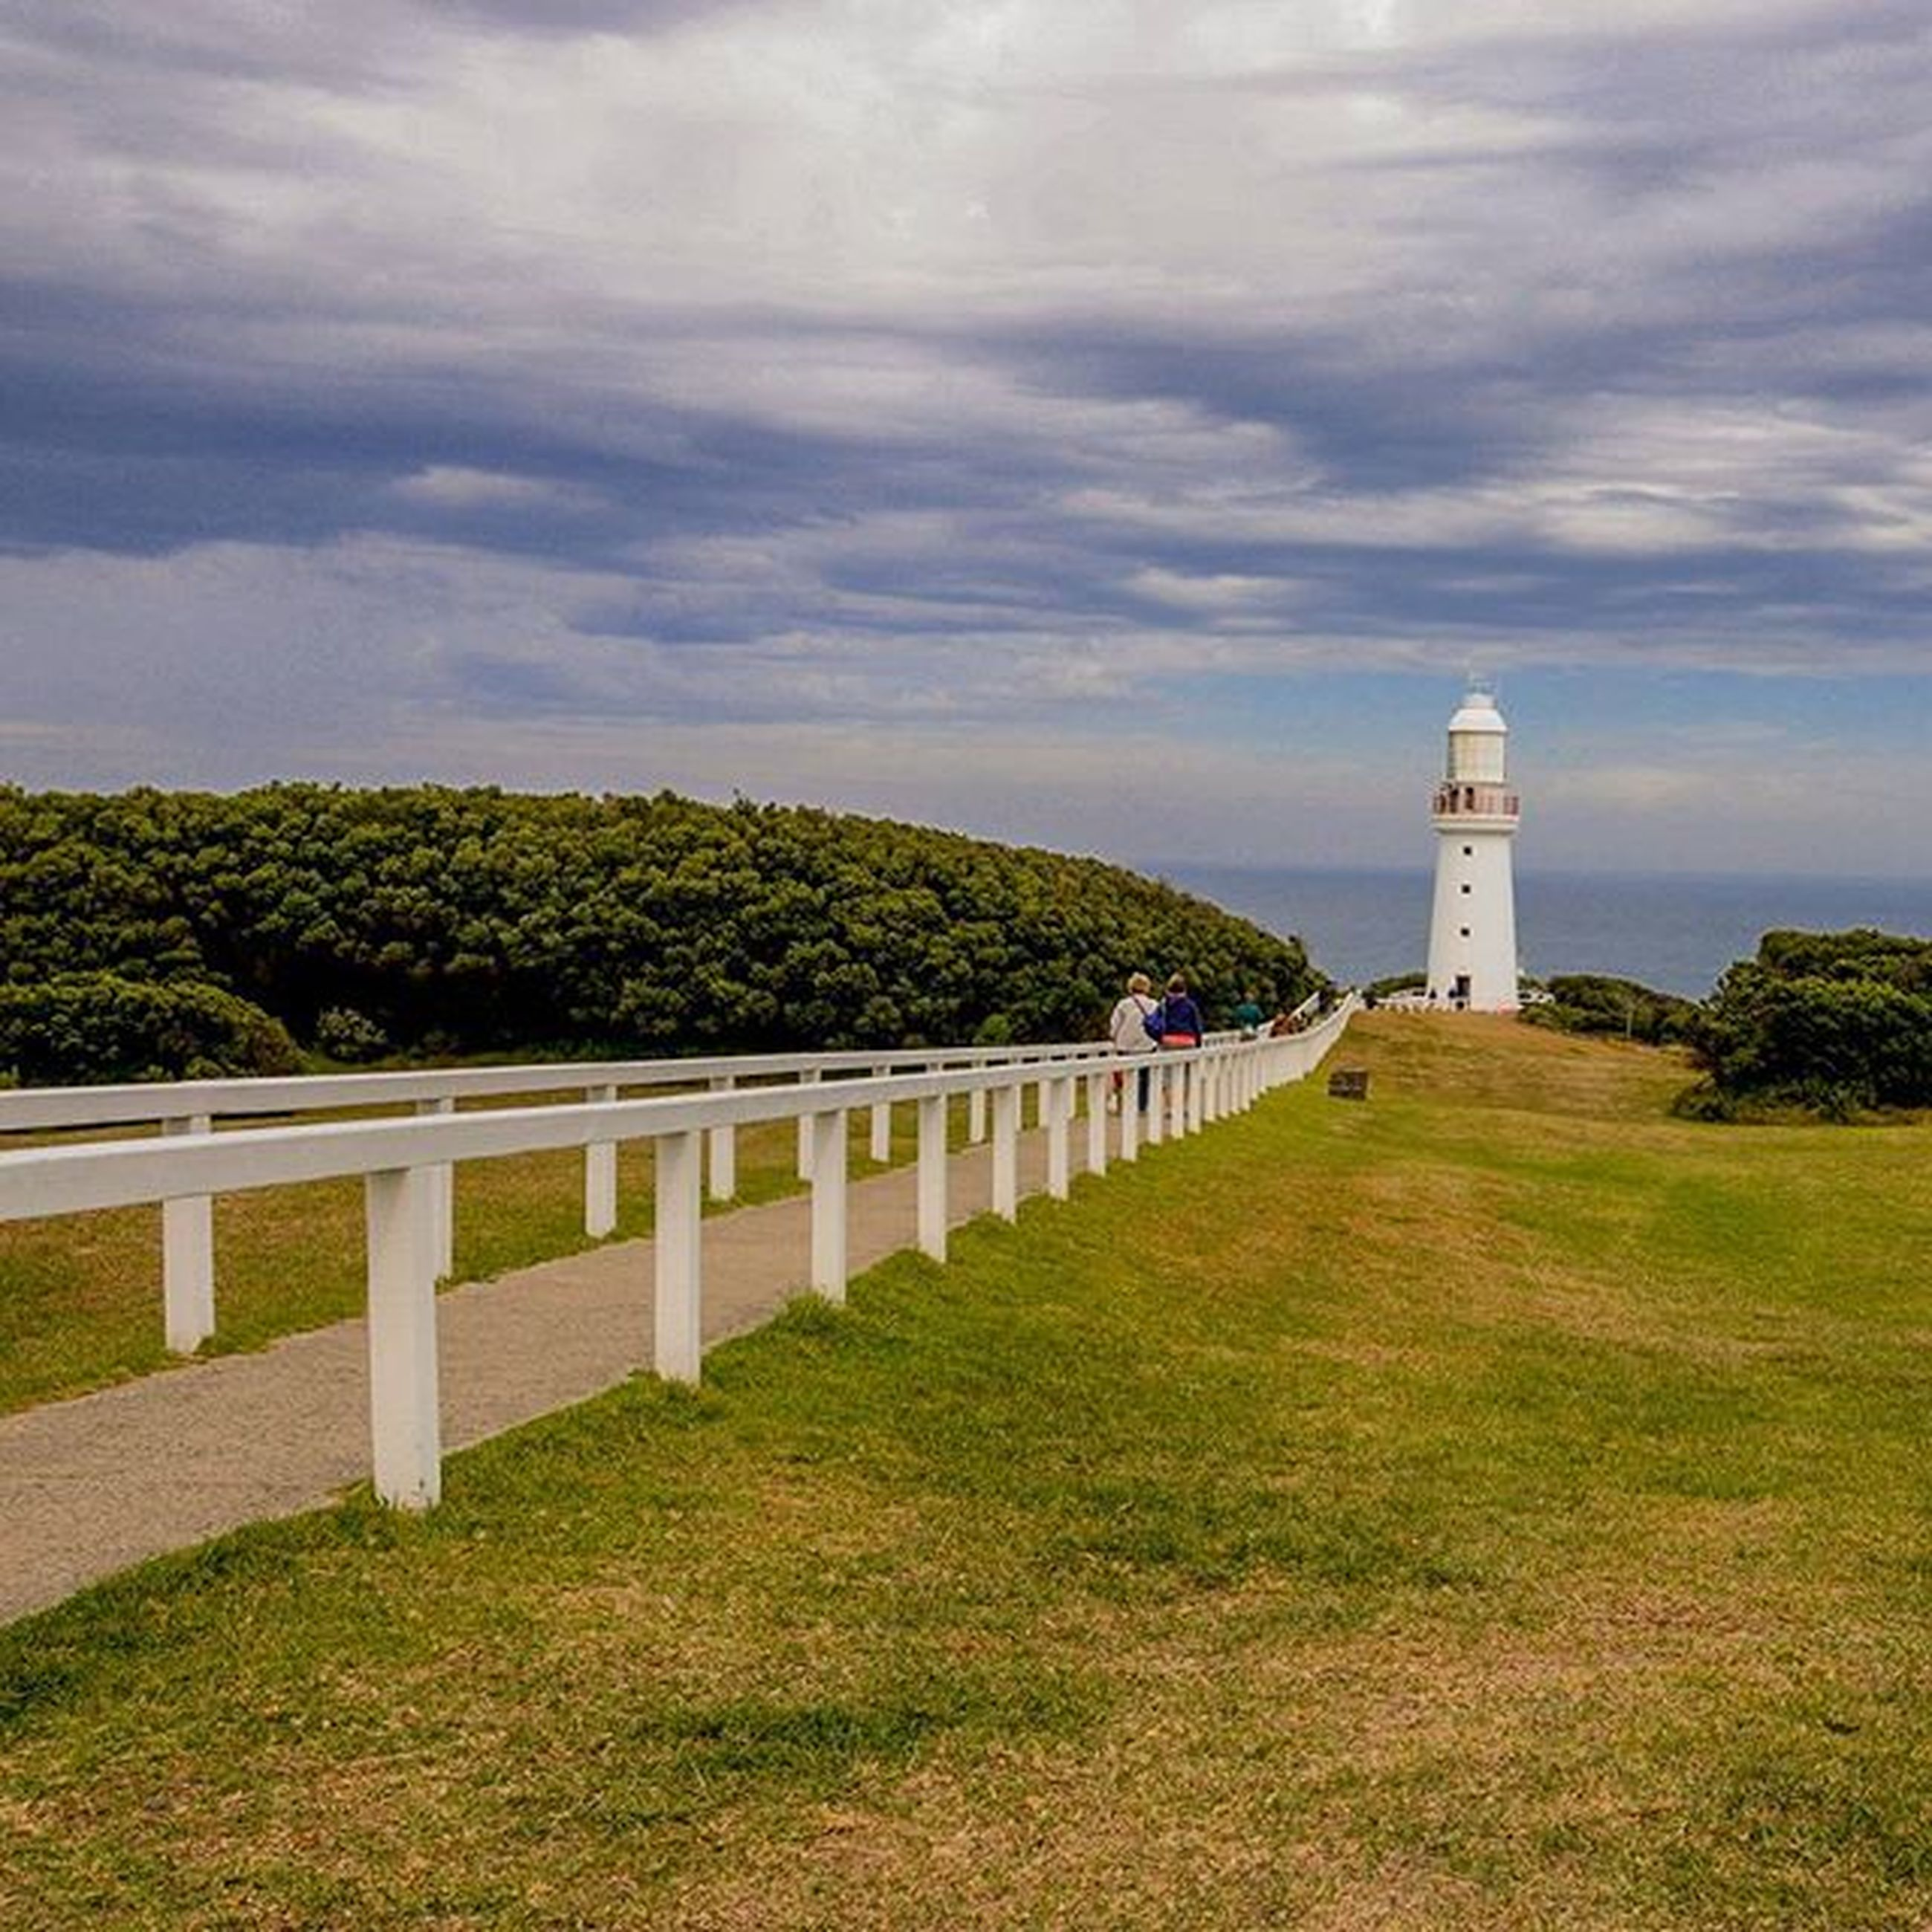 architecture, built structure, sky, lighthouse, grass, building exterior, cloud - sky, guidance, tower, tree, cloud, cloudy, protection, nature, green color, safety, water, day, direction, tranquility